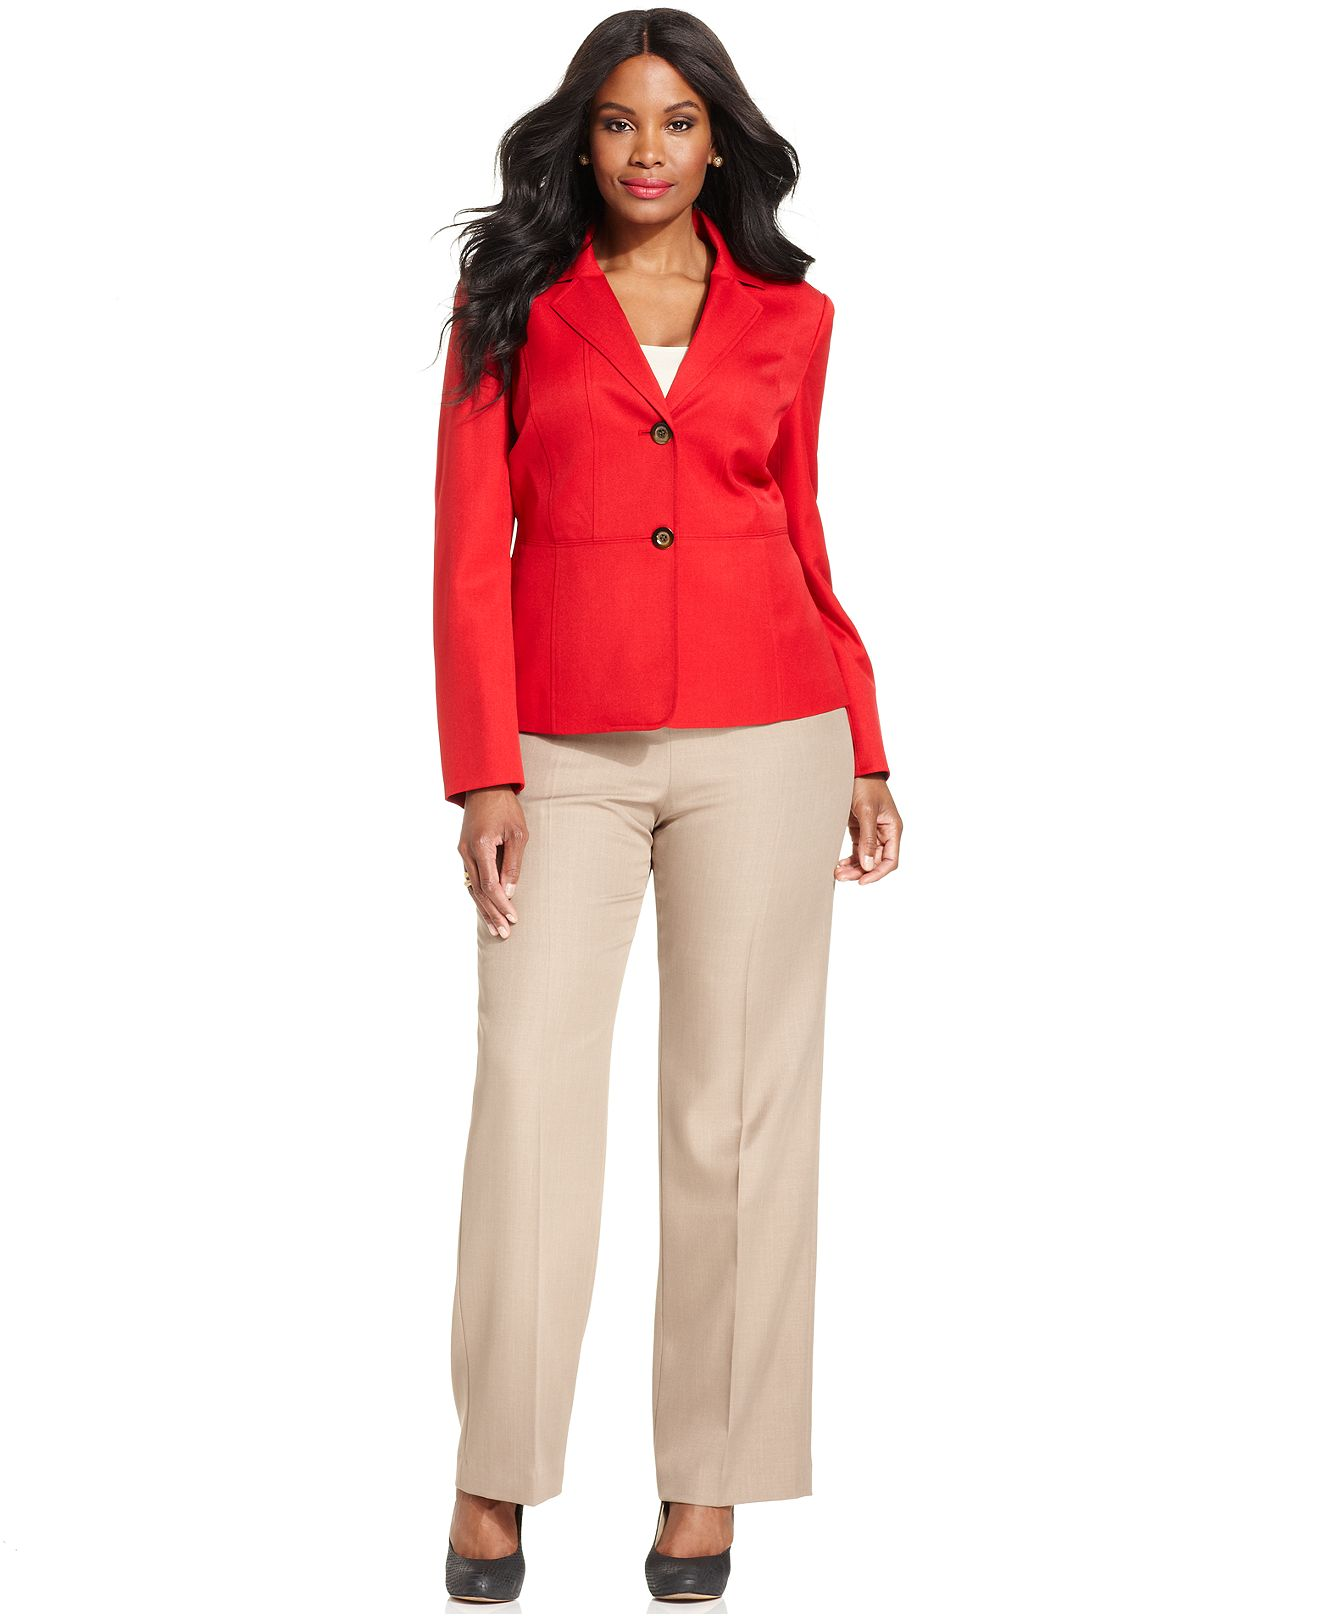 Dress Pants Suits For Weddings 63 Perfect Pant Suits for Plus